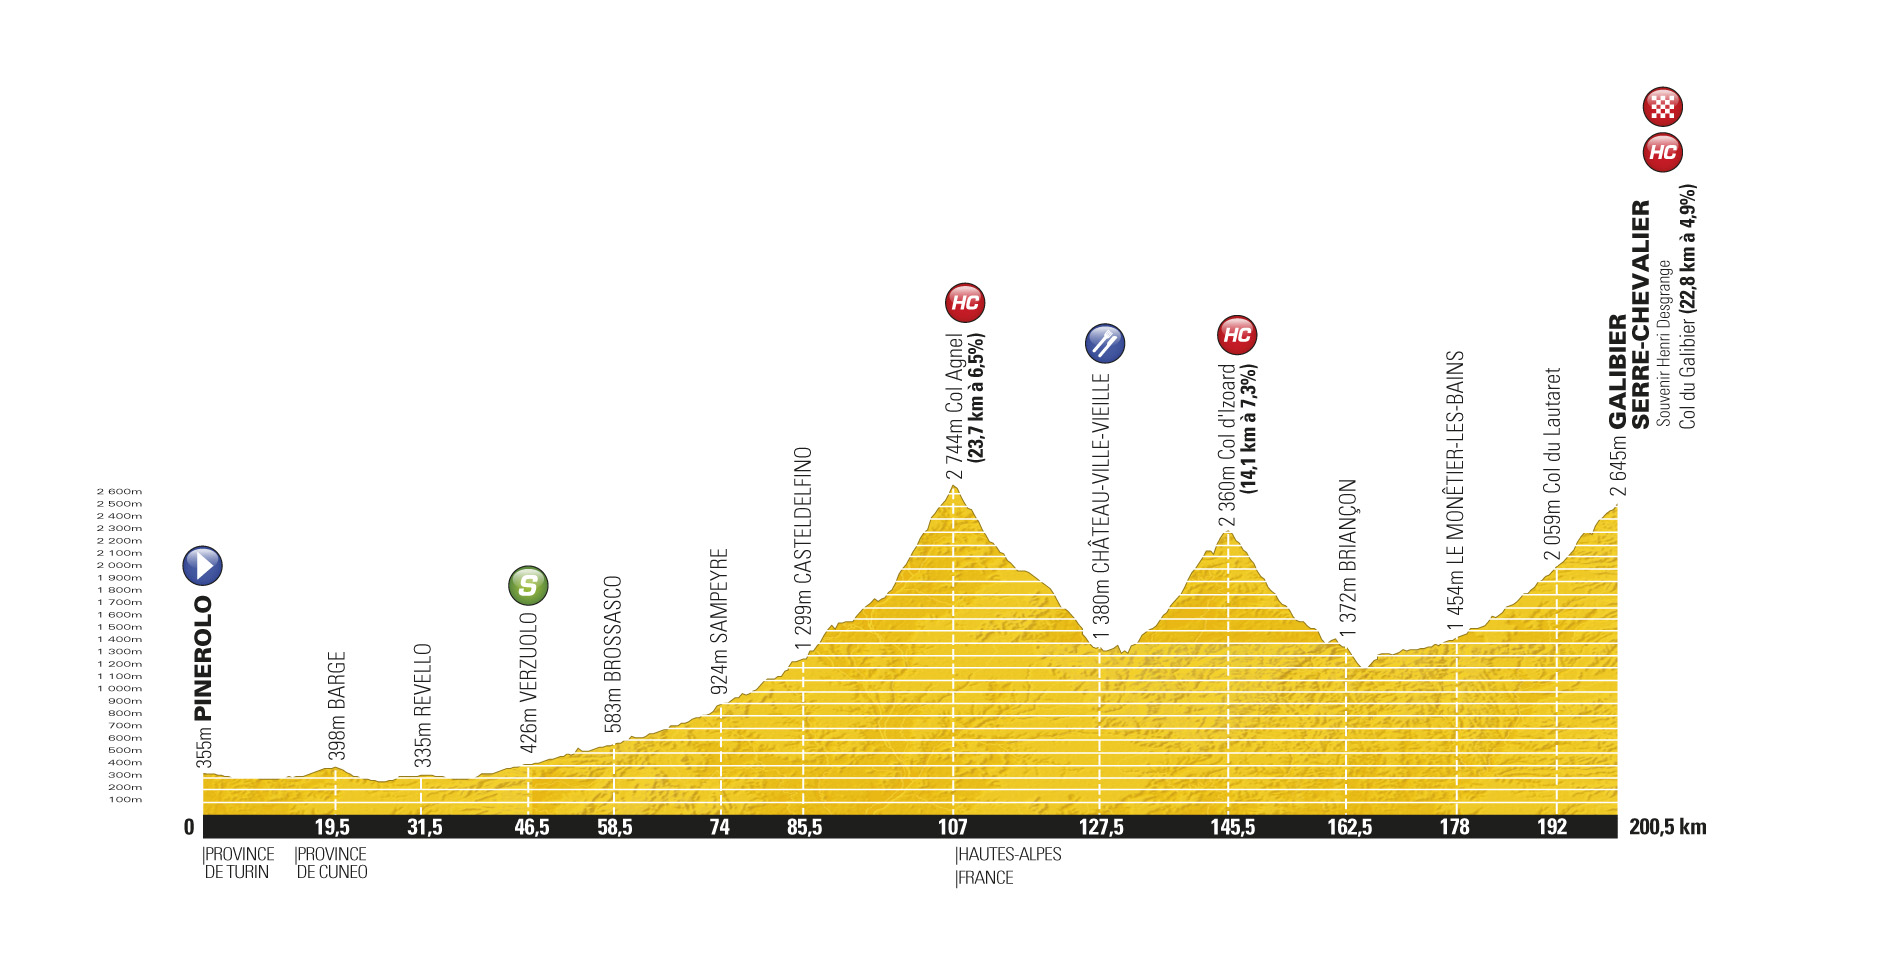 Stage 18 profile, Tour de France 2011